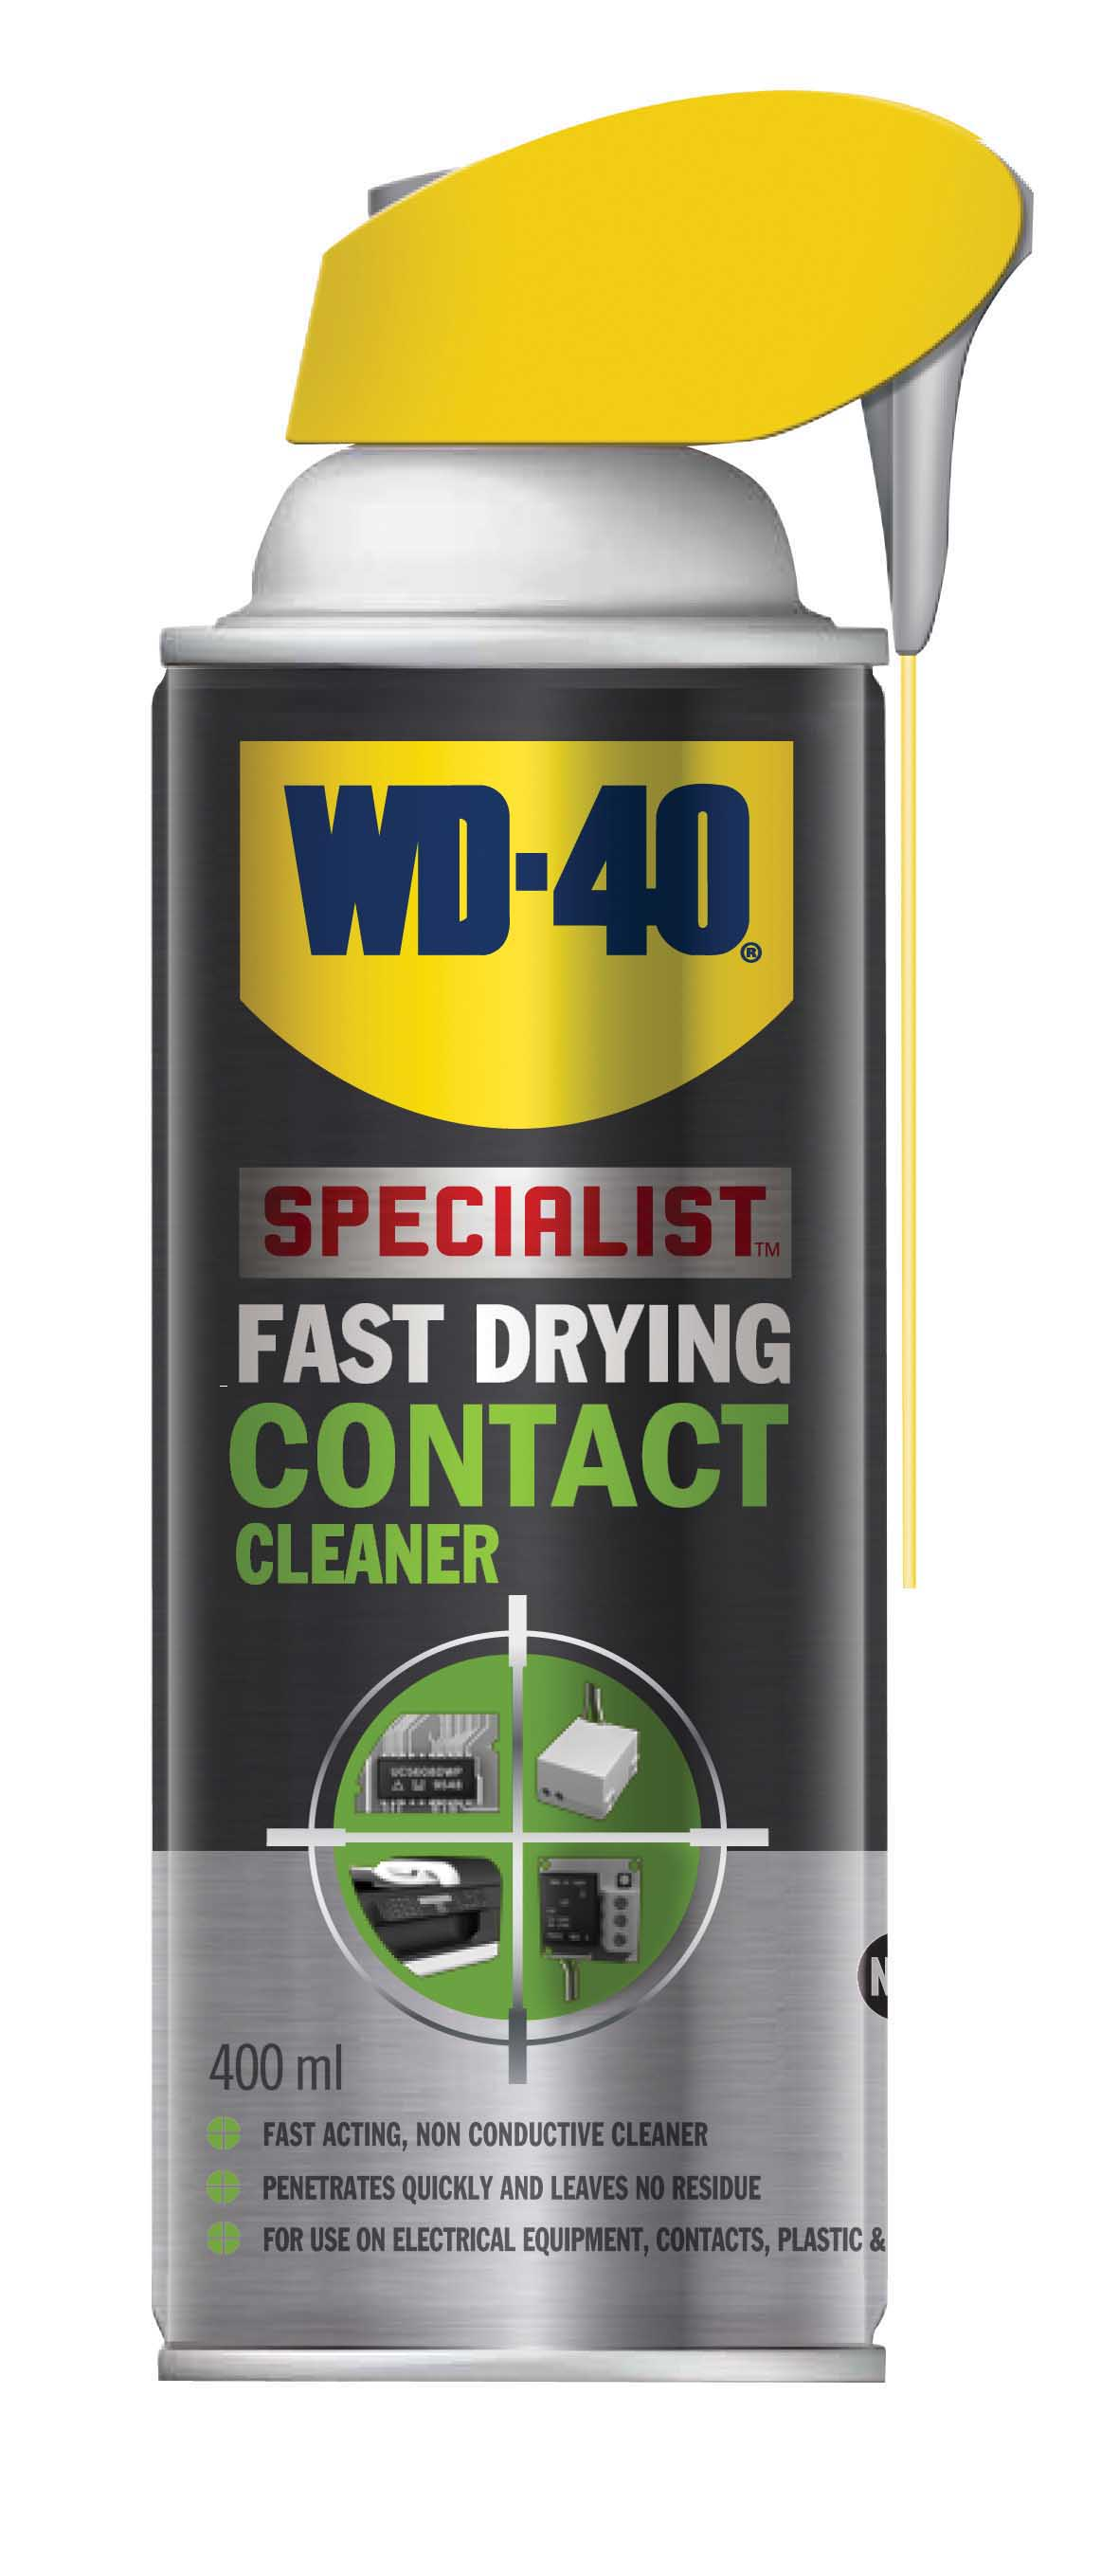 fast drying contact cleaner smart straw aerosol spray 400ml wd 40 44376 ebay. Black Bedroom Furniture Sets. Home Design Ideas